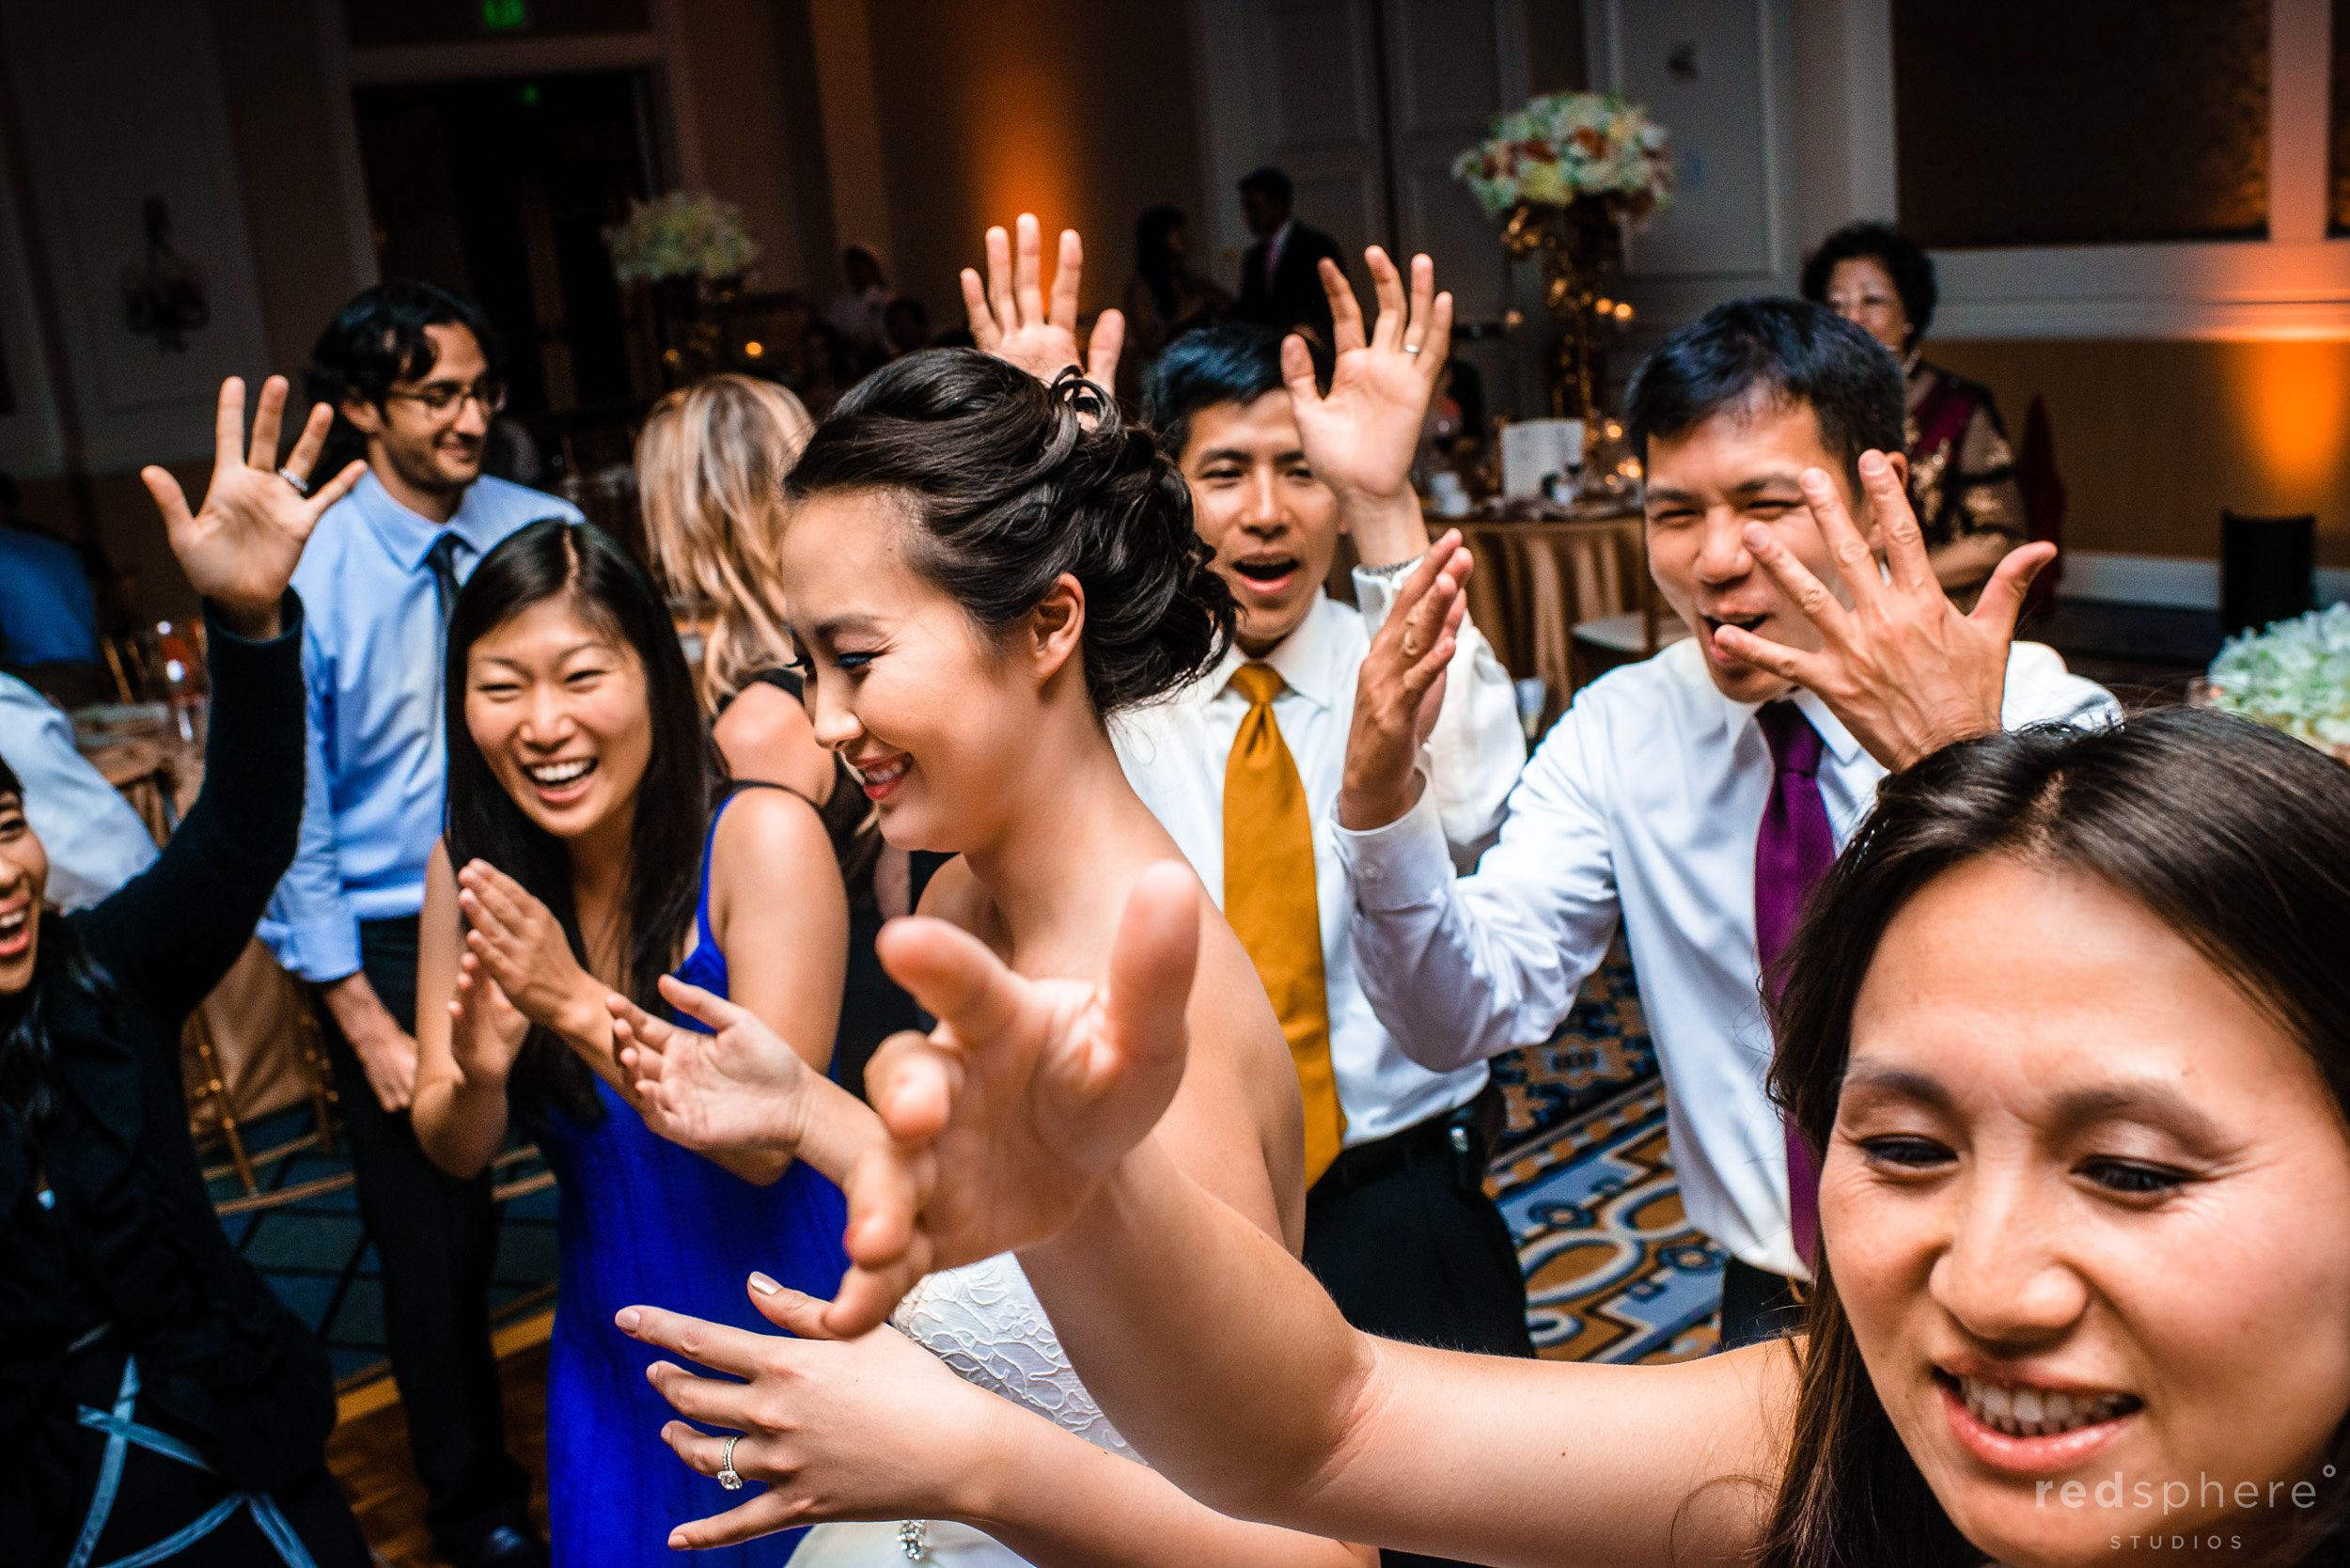 Guests Dance Simultaneously in The Ritz Carlton Ballroom